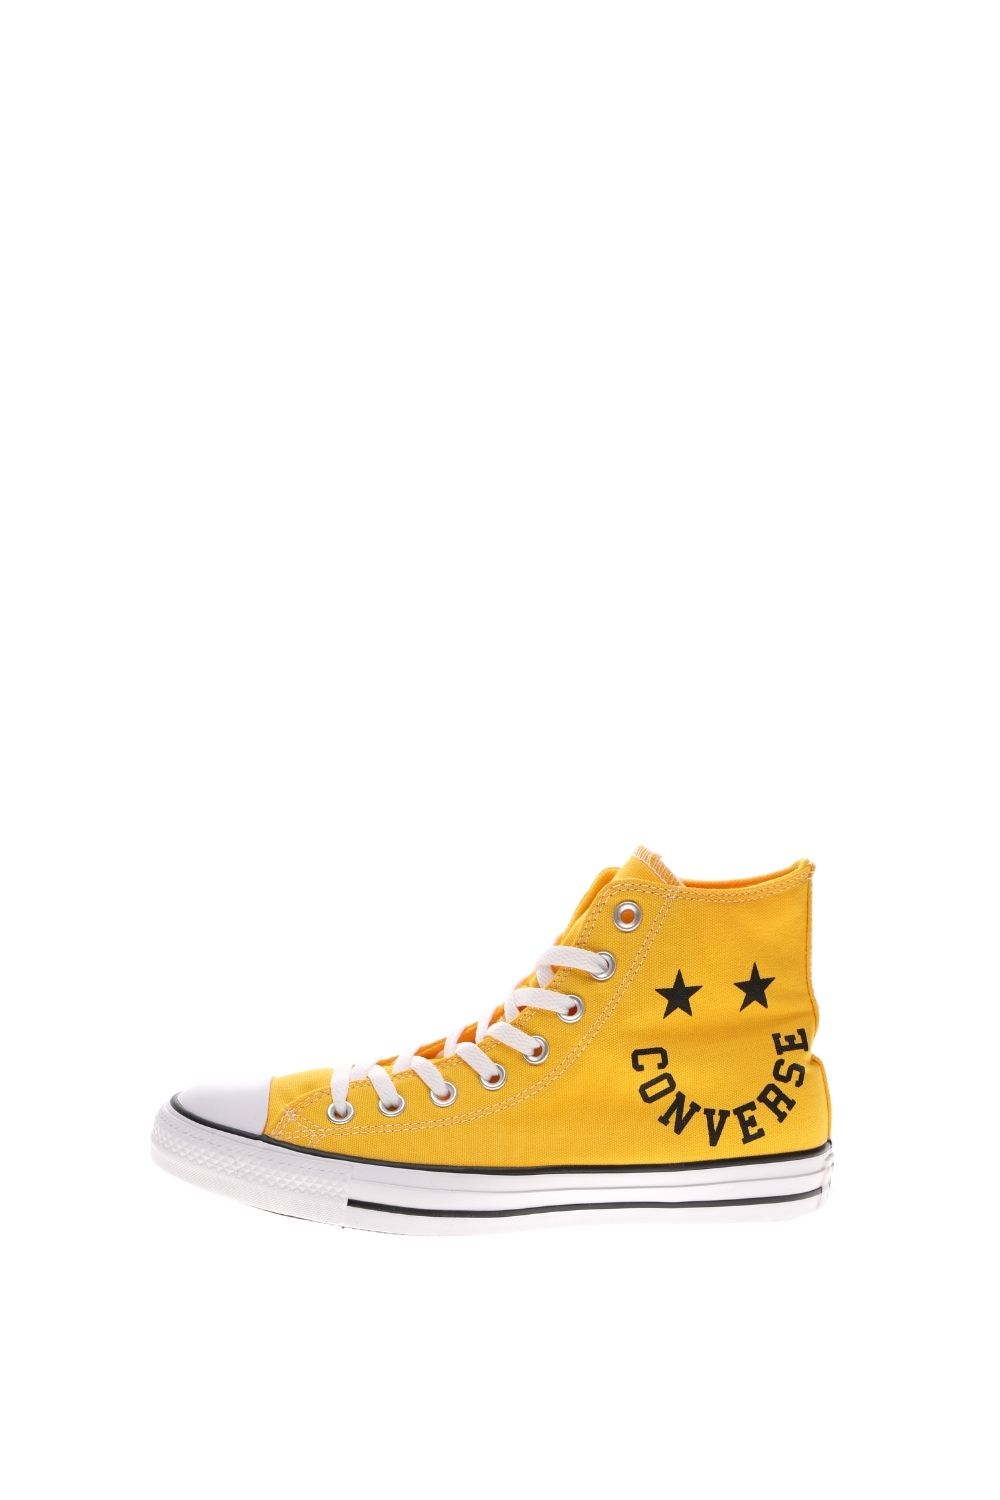 CONVERSE – Unisex ψηλά sneakers CONVERSE CHUCK TAYLOR ALL STAR SMILE κίτρινα μαύρα